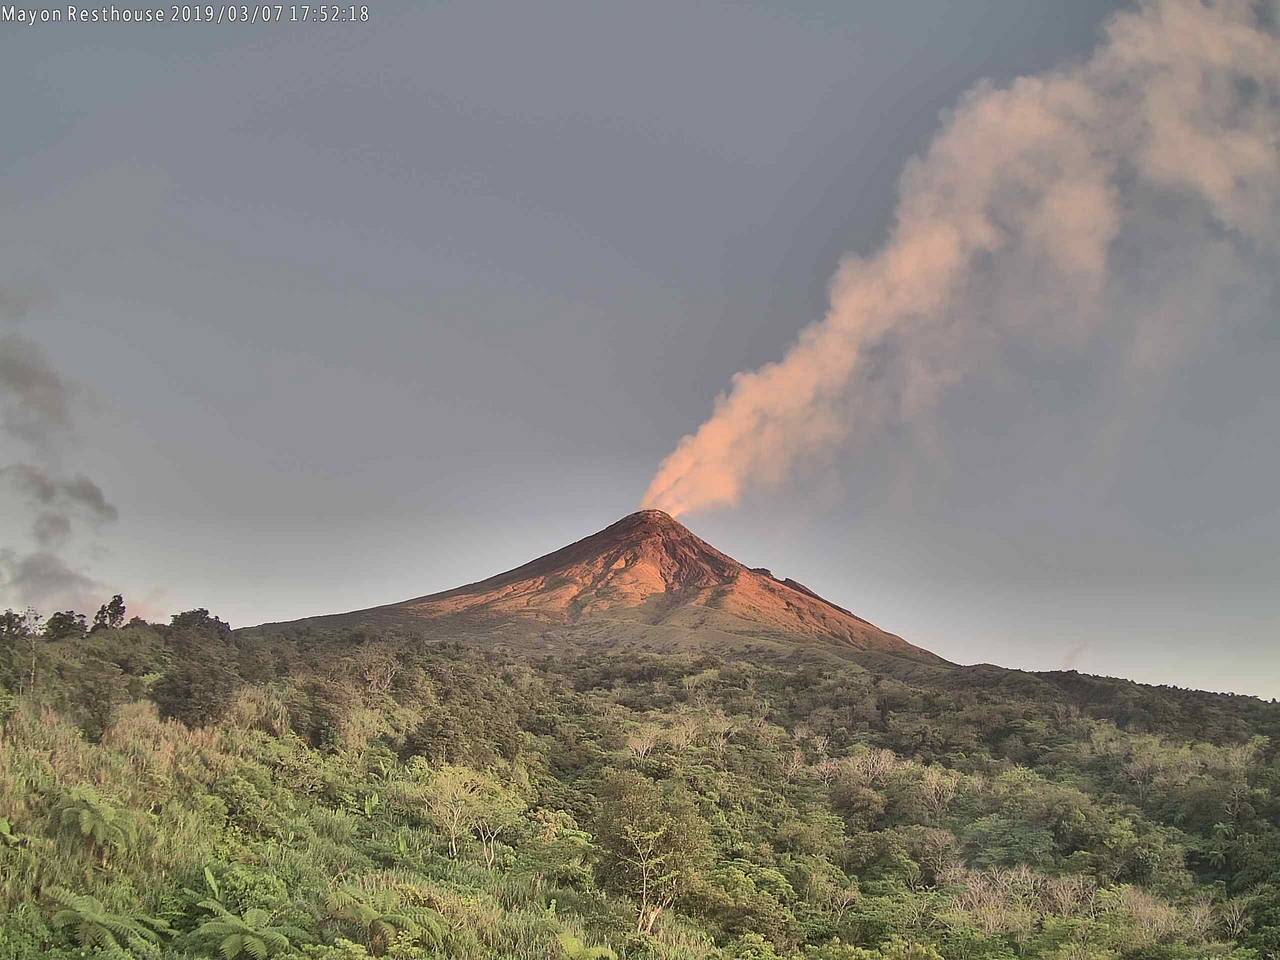 April 05 , 2019. EN. Indonesia : Agung , Colombia : Nevado del Ruiz , El Salvador : Santa Ana (Ilamatepec) , Philippines : Mayon , Guatemala : Fuego , Indonesia : Anak Krakatau.